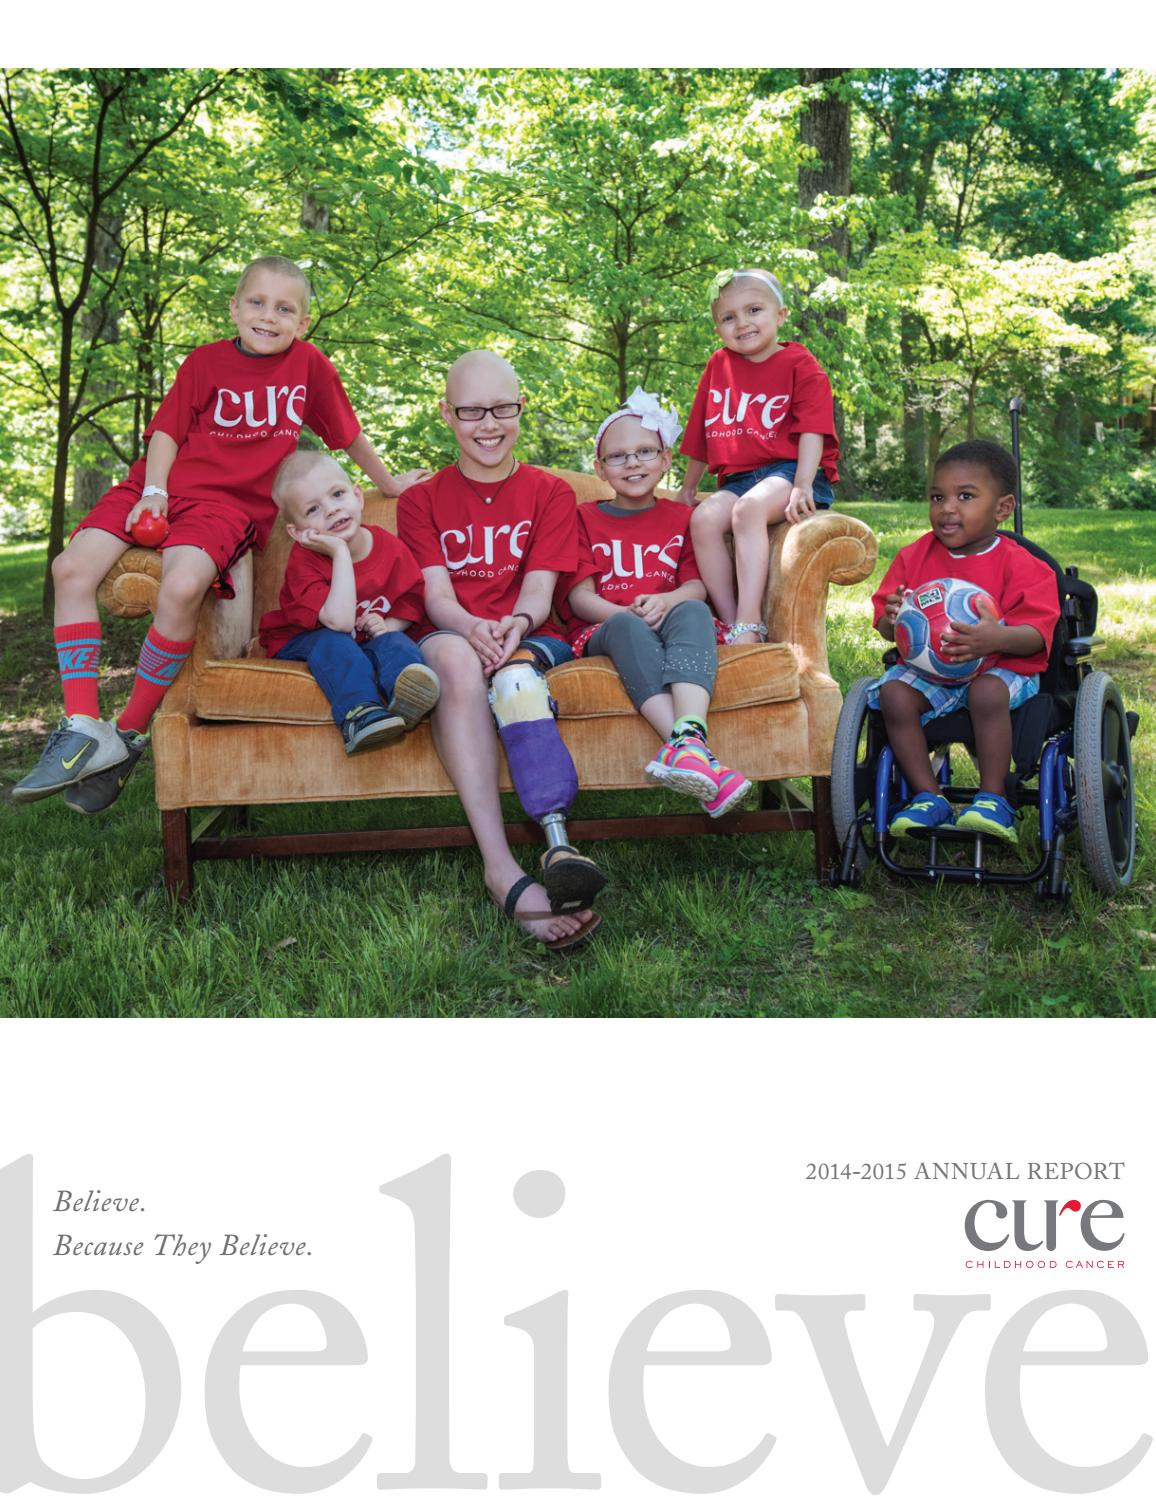 CURE Childhood Cancer 2014-2015 Annual Report by